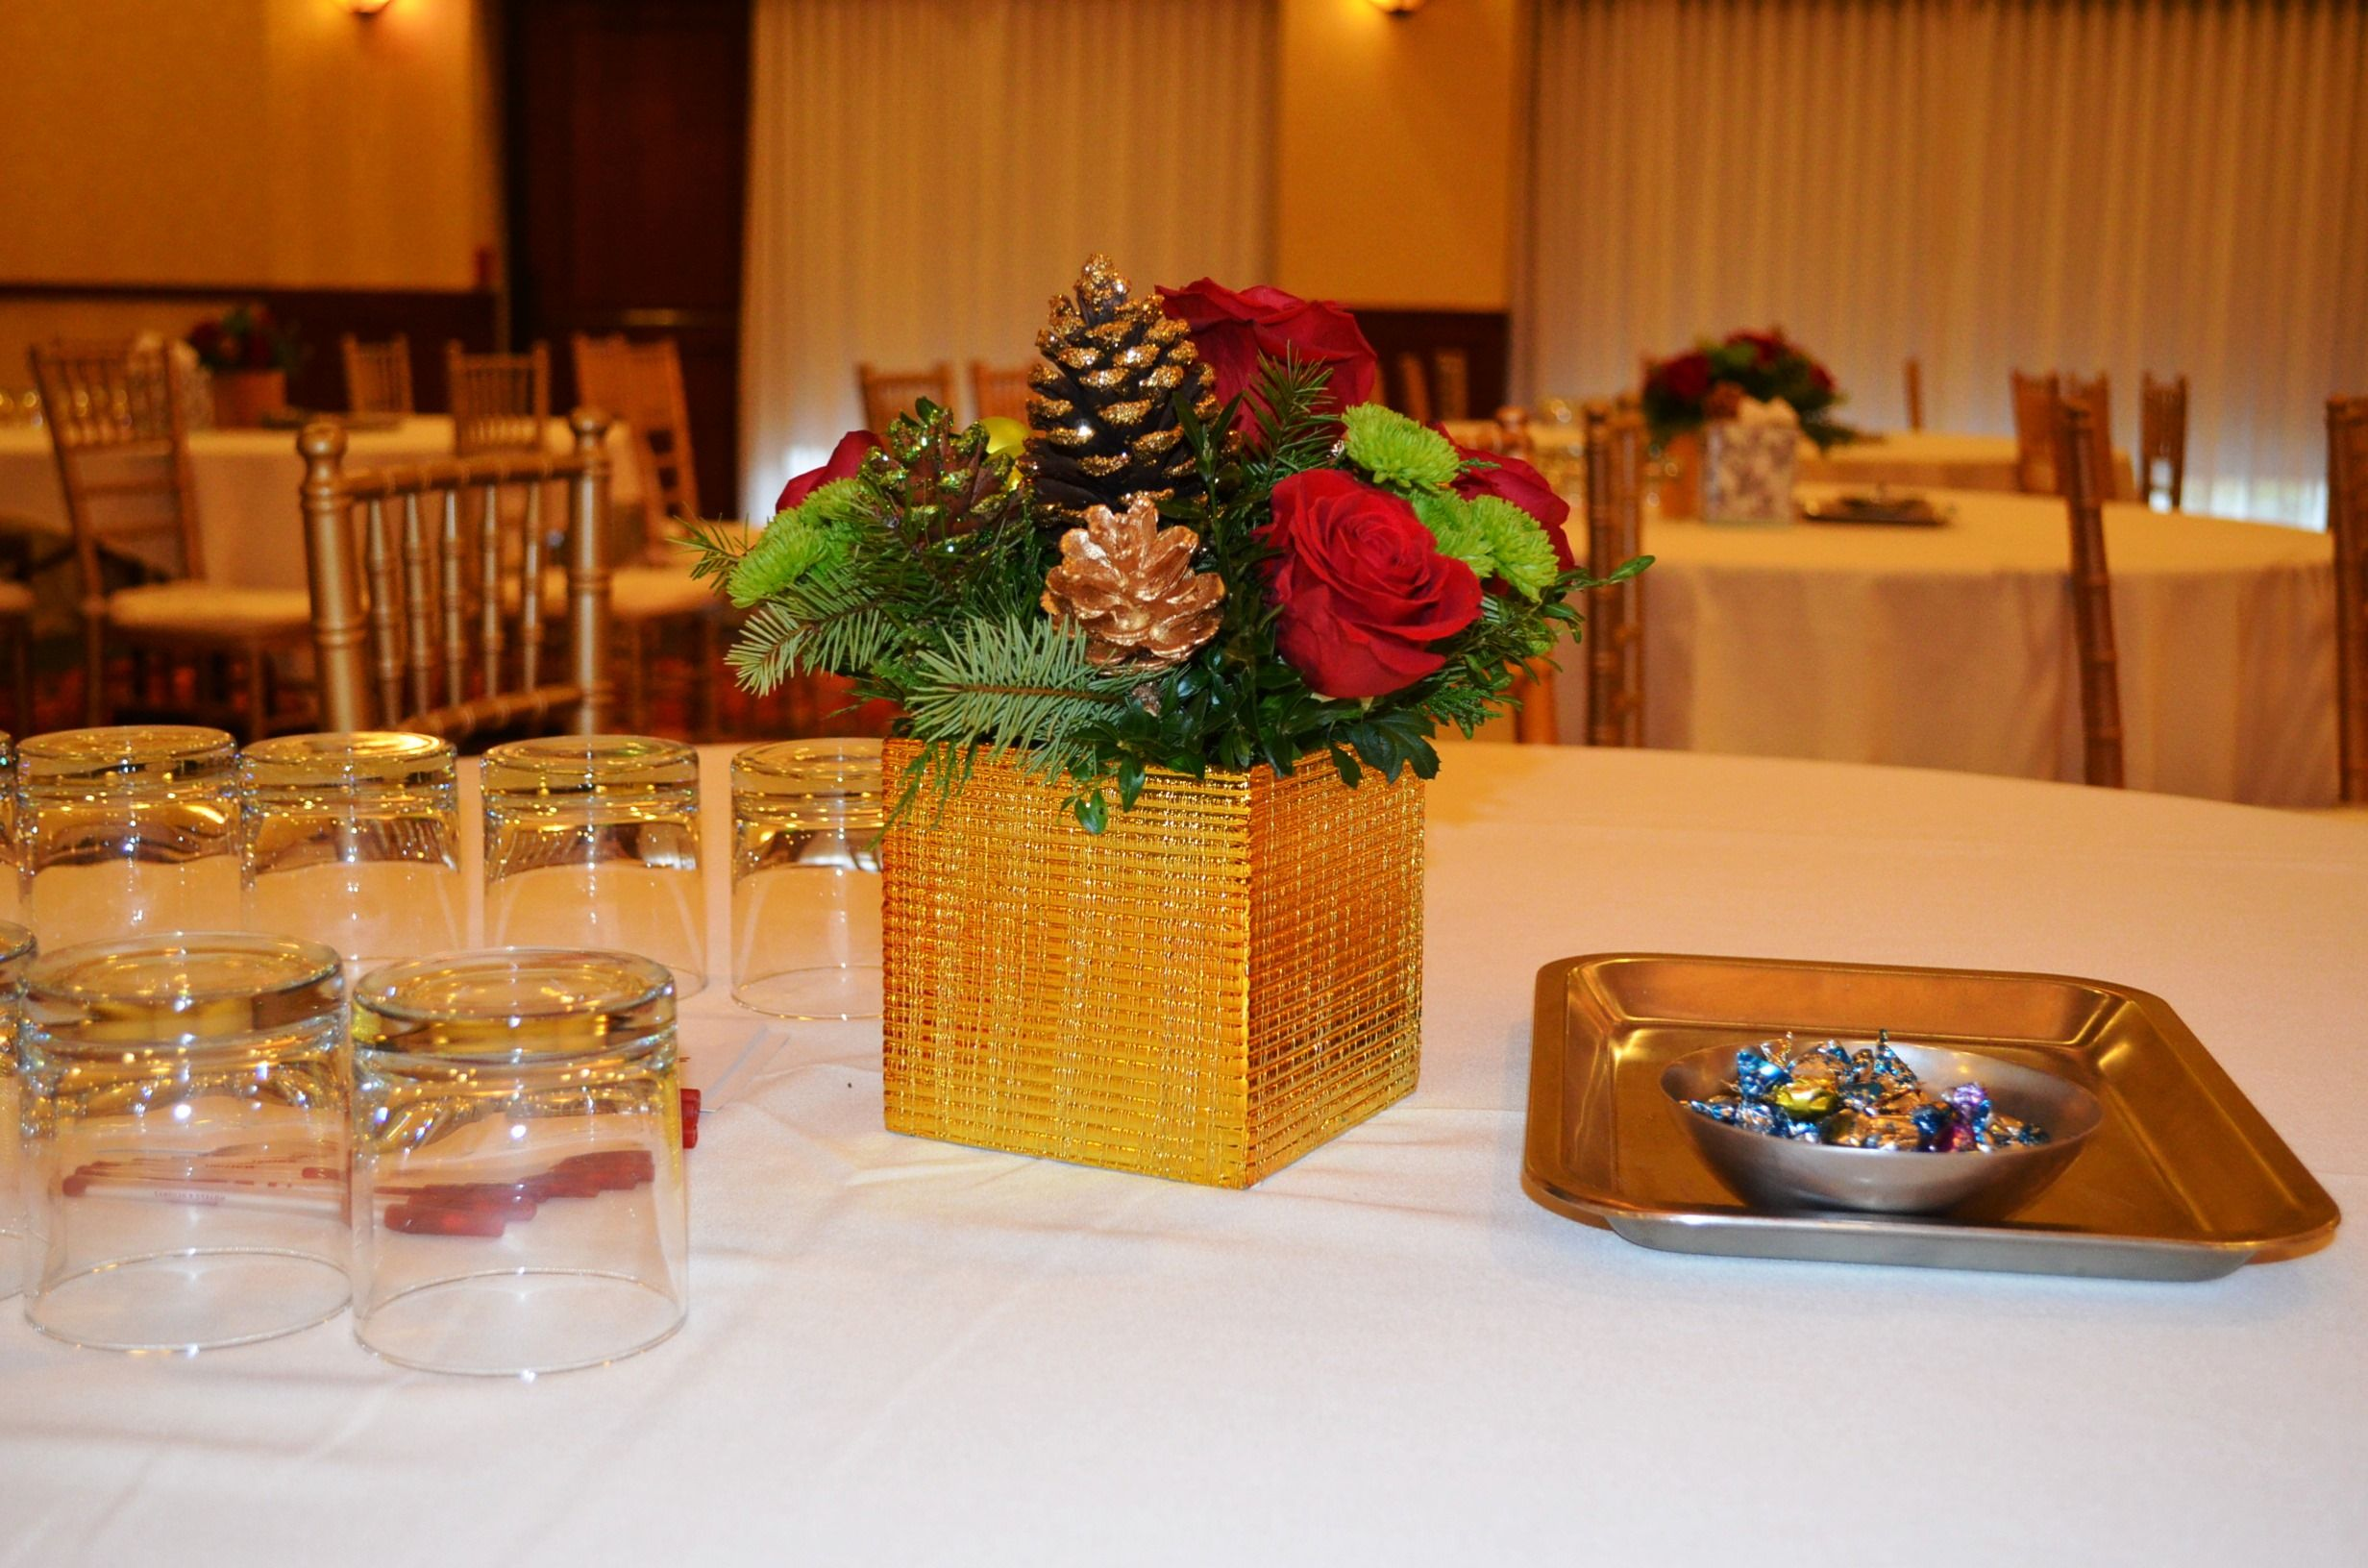 Simple Floral Centerpieces For A Holiday Corporate Luncheon Flowers Stimulate Crea Holiday Centerpieces Corporate Events Decoration Simple Floral Centerpieces